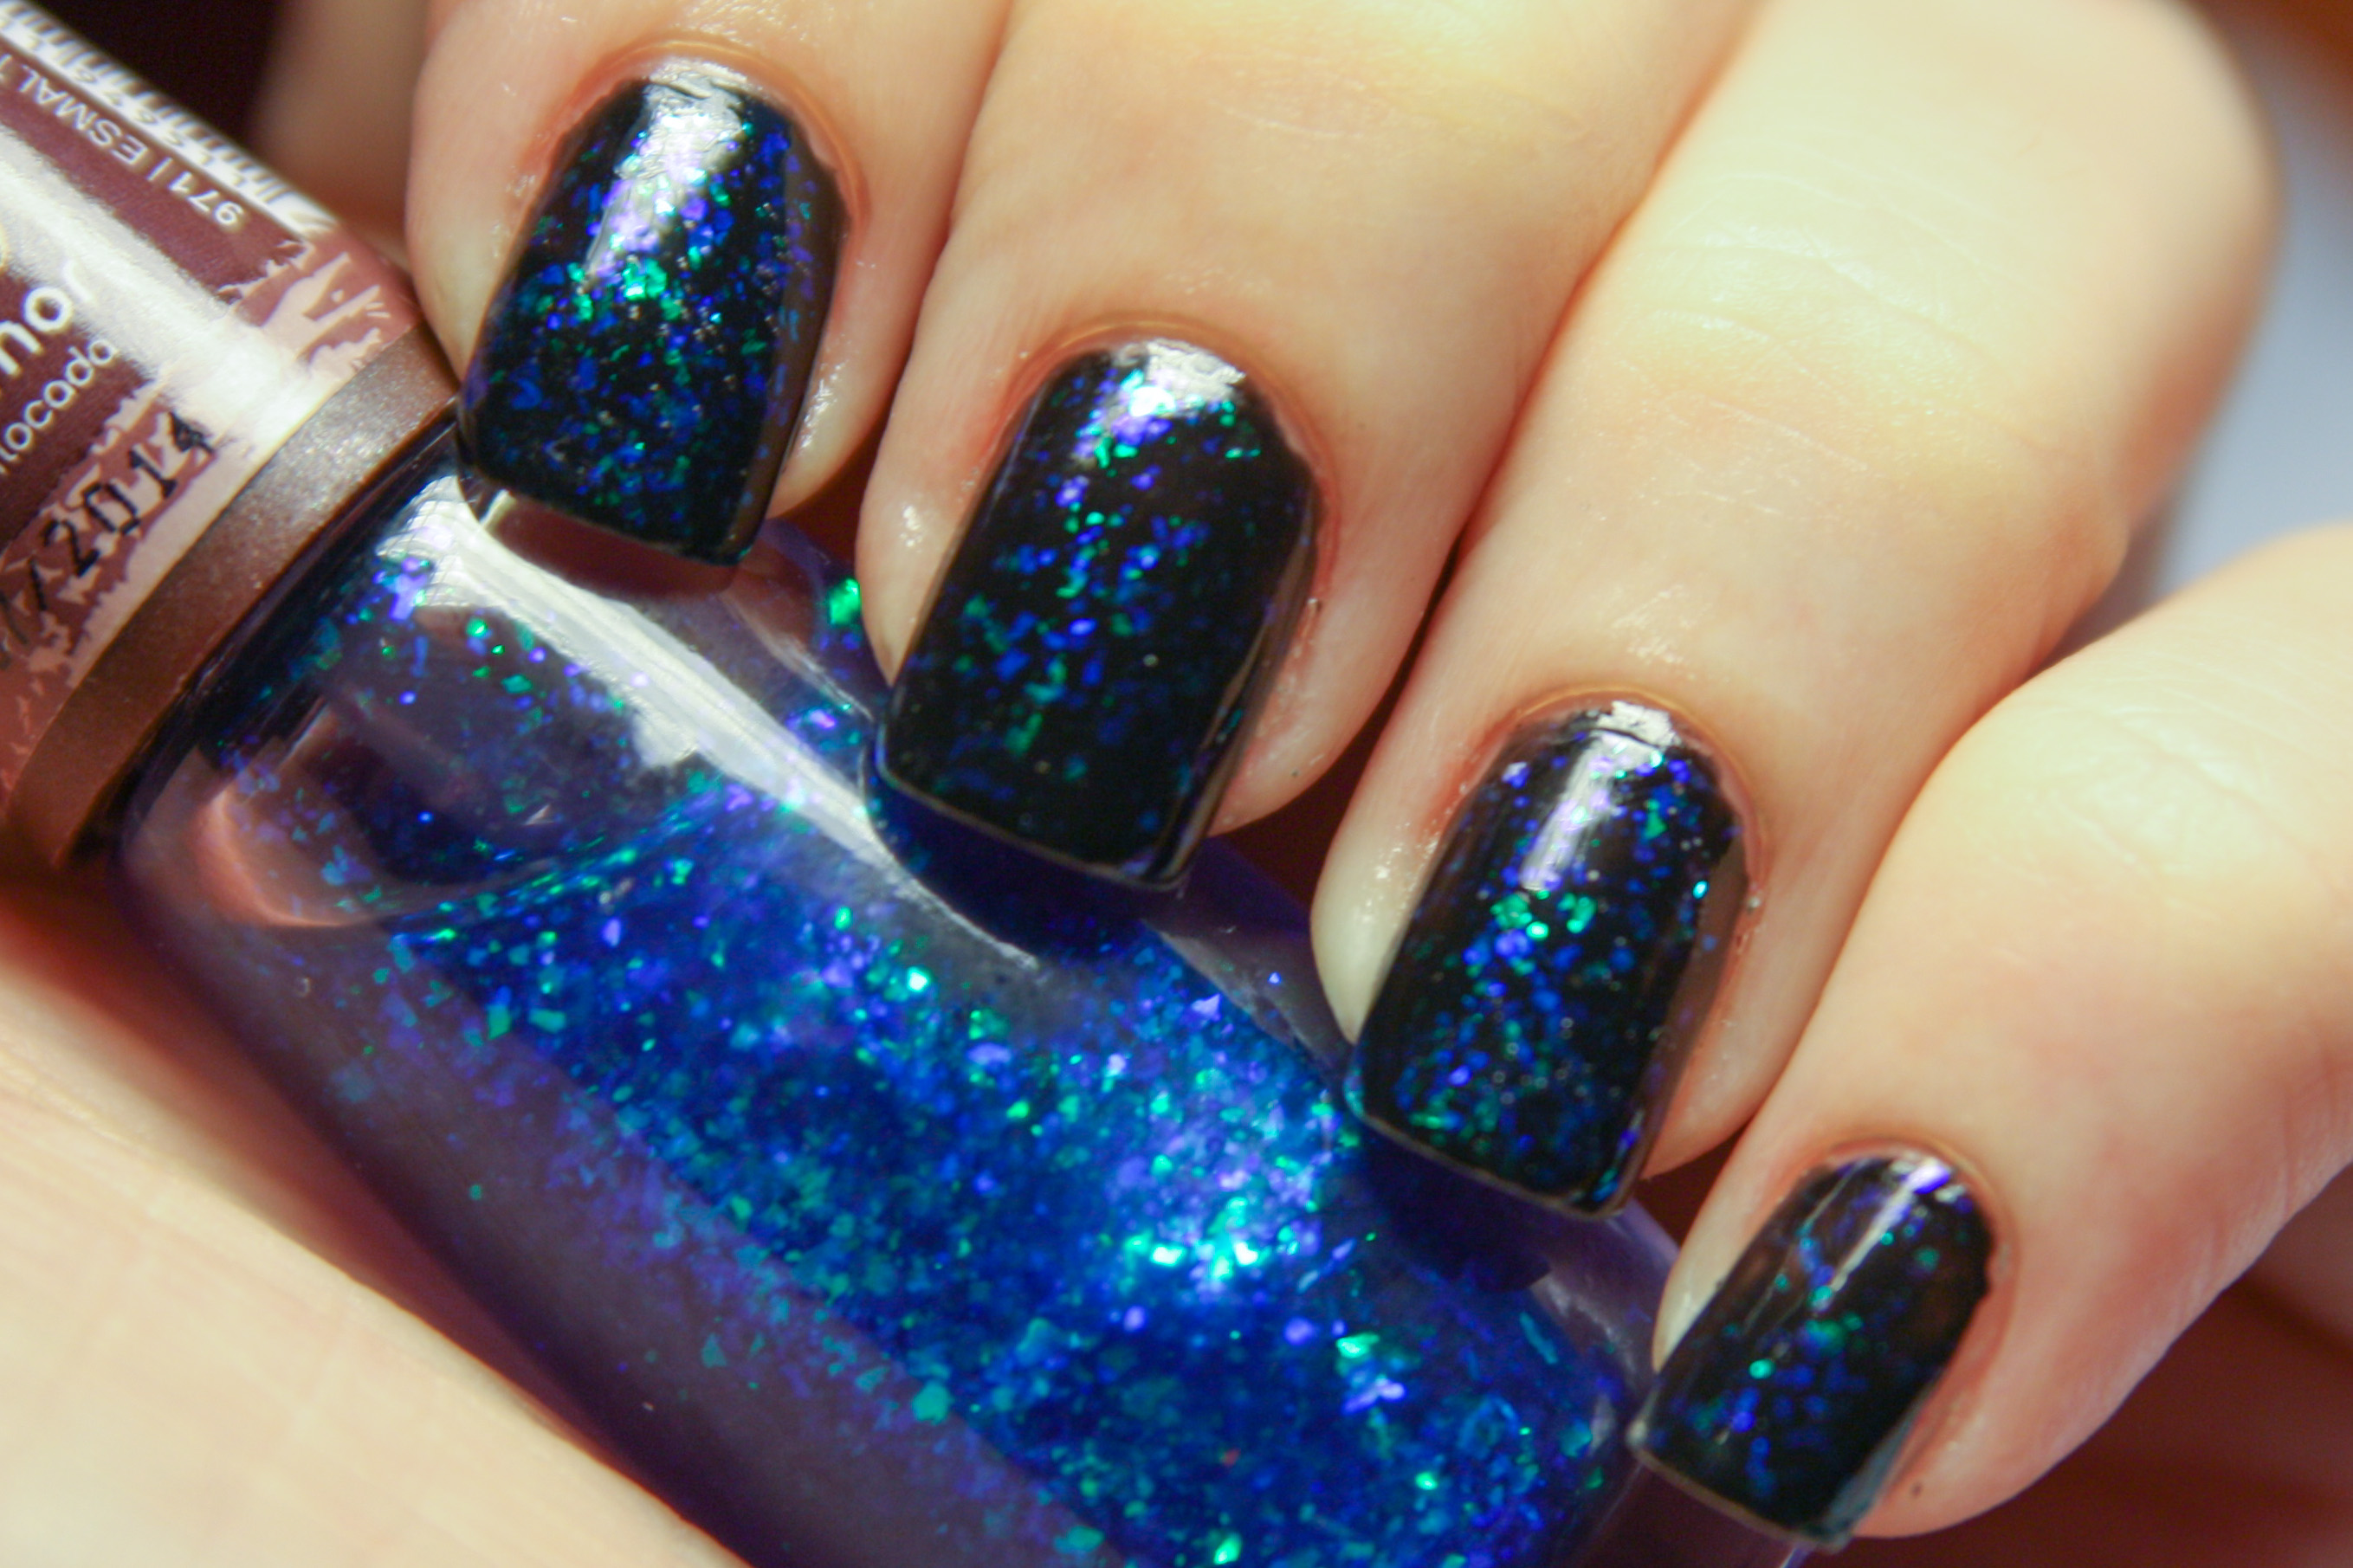 File:Glitter nail polish (blue).jpg - Wikimedia Commons